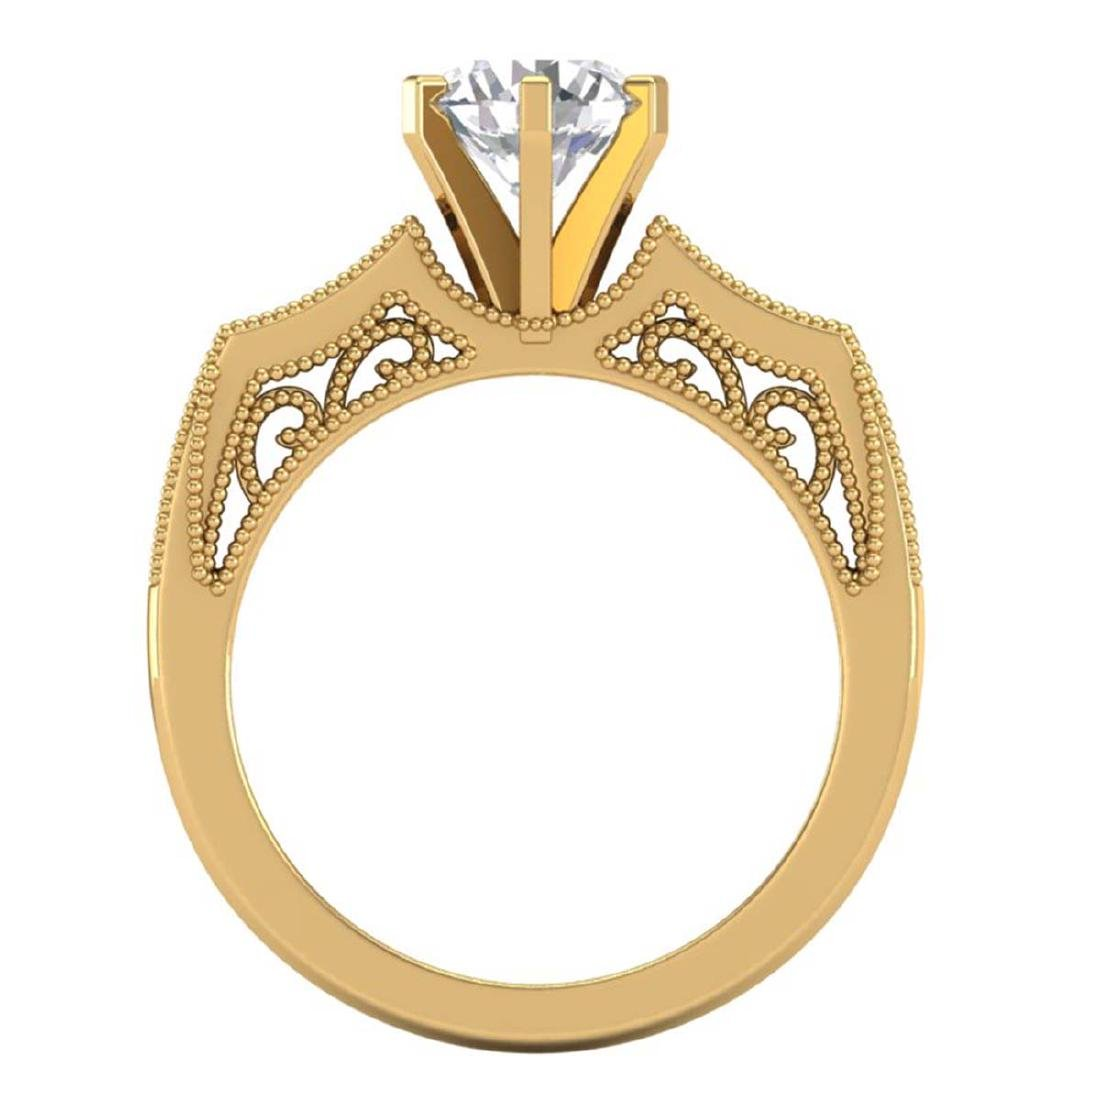 1.51 CTW VS/SI Diamond Solitaire Art Deco Ring 18K - 3